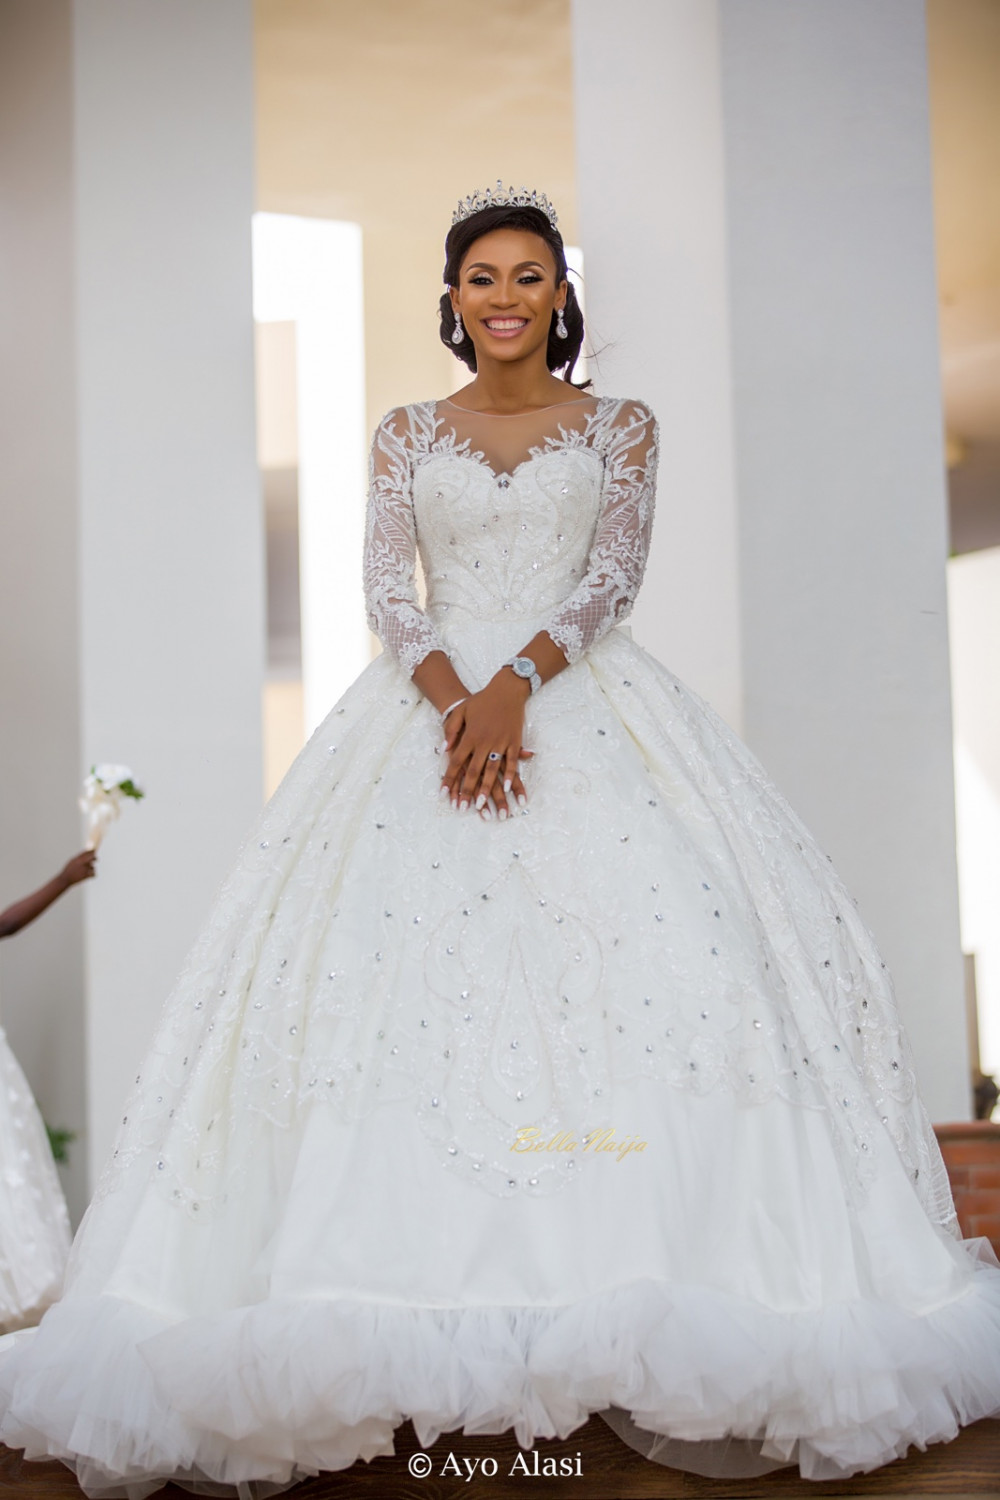 Yomi casual Grace Ayo Alasi BellaNaija weddings 04